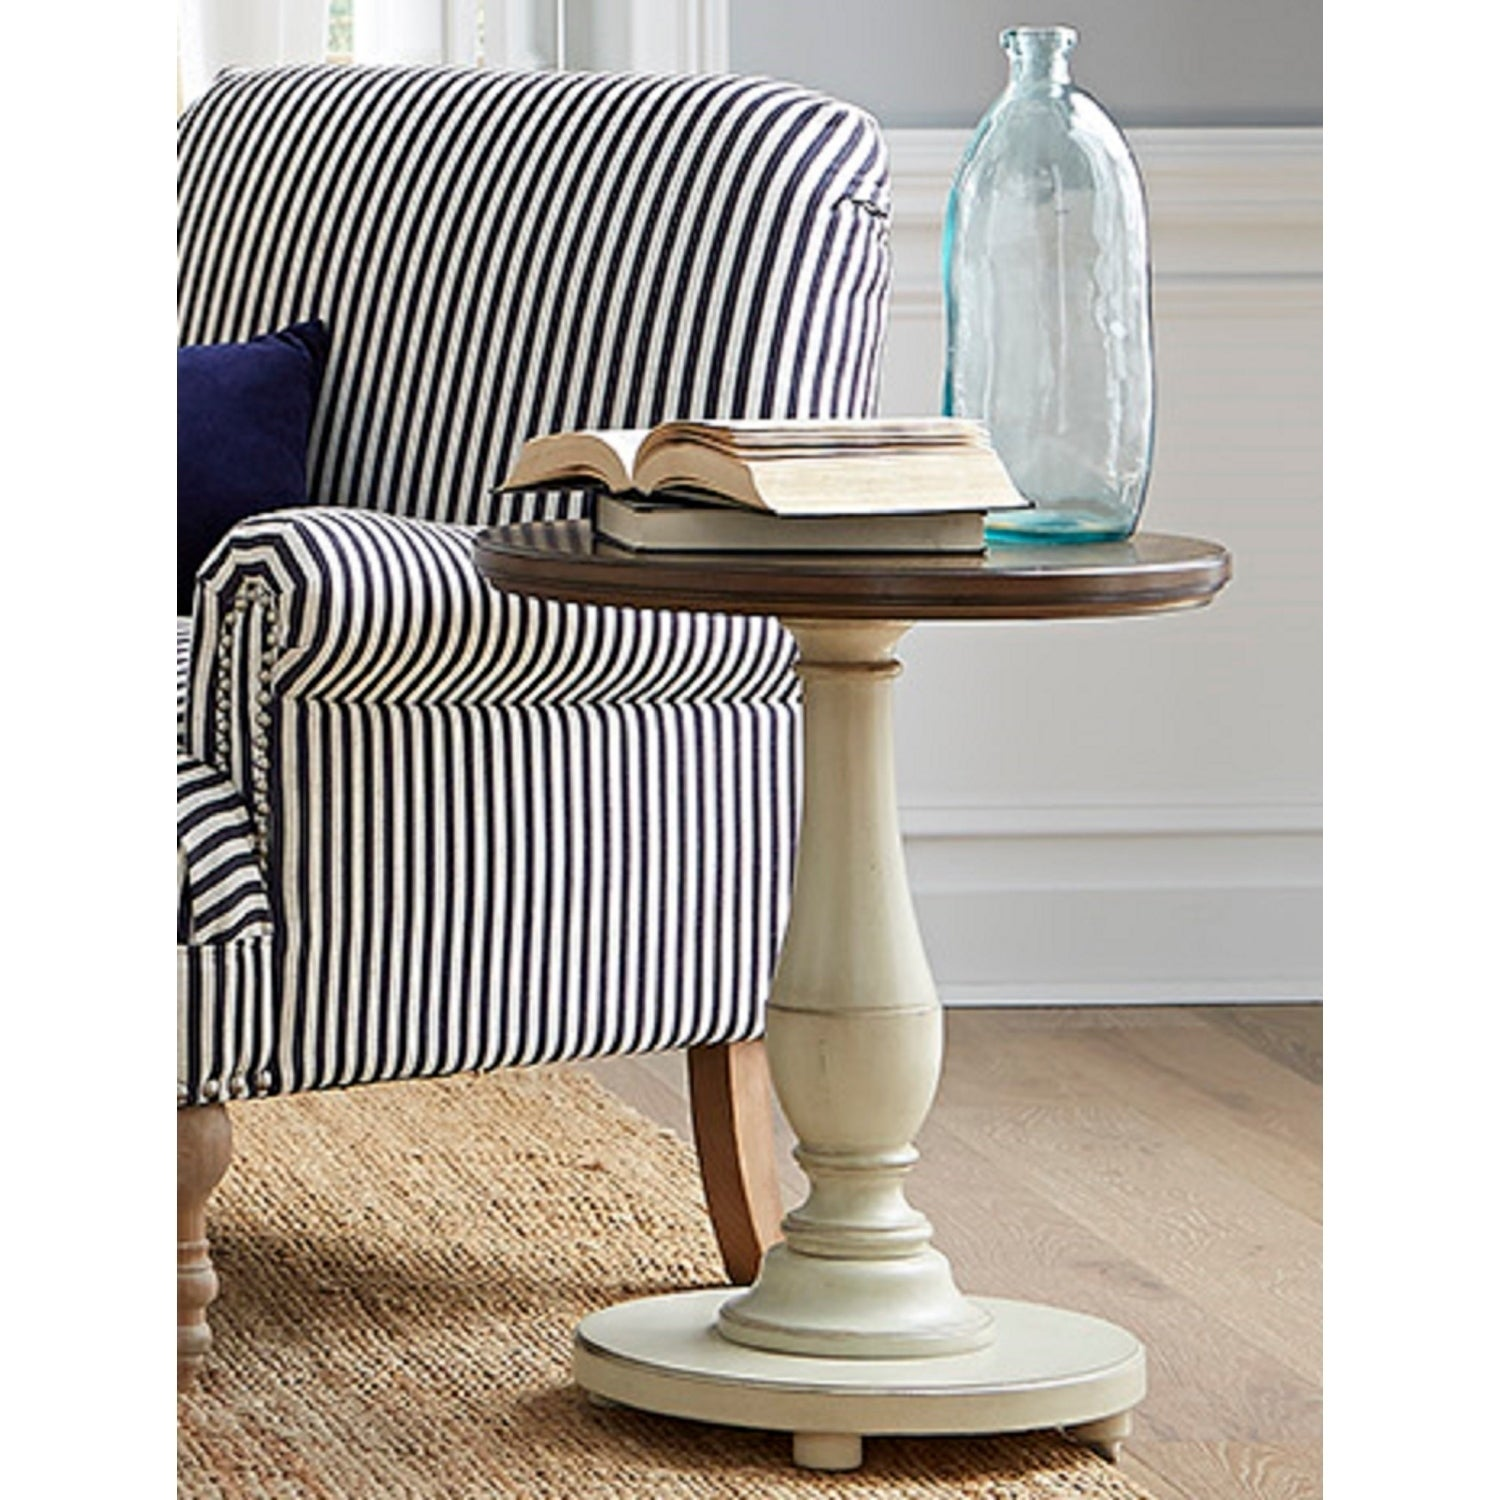 Solid Wood Round Pedestal End Table (Brown)